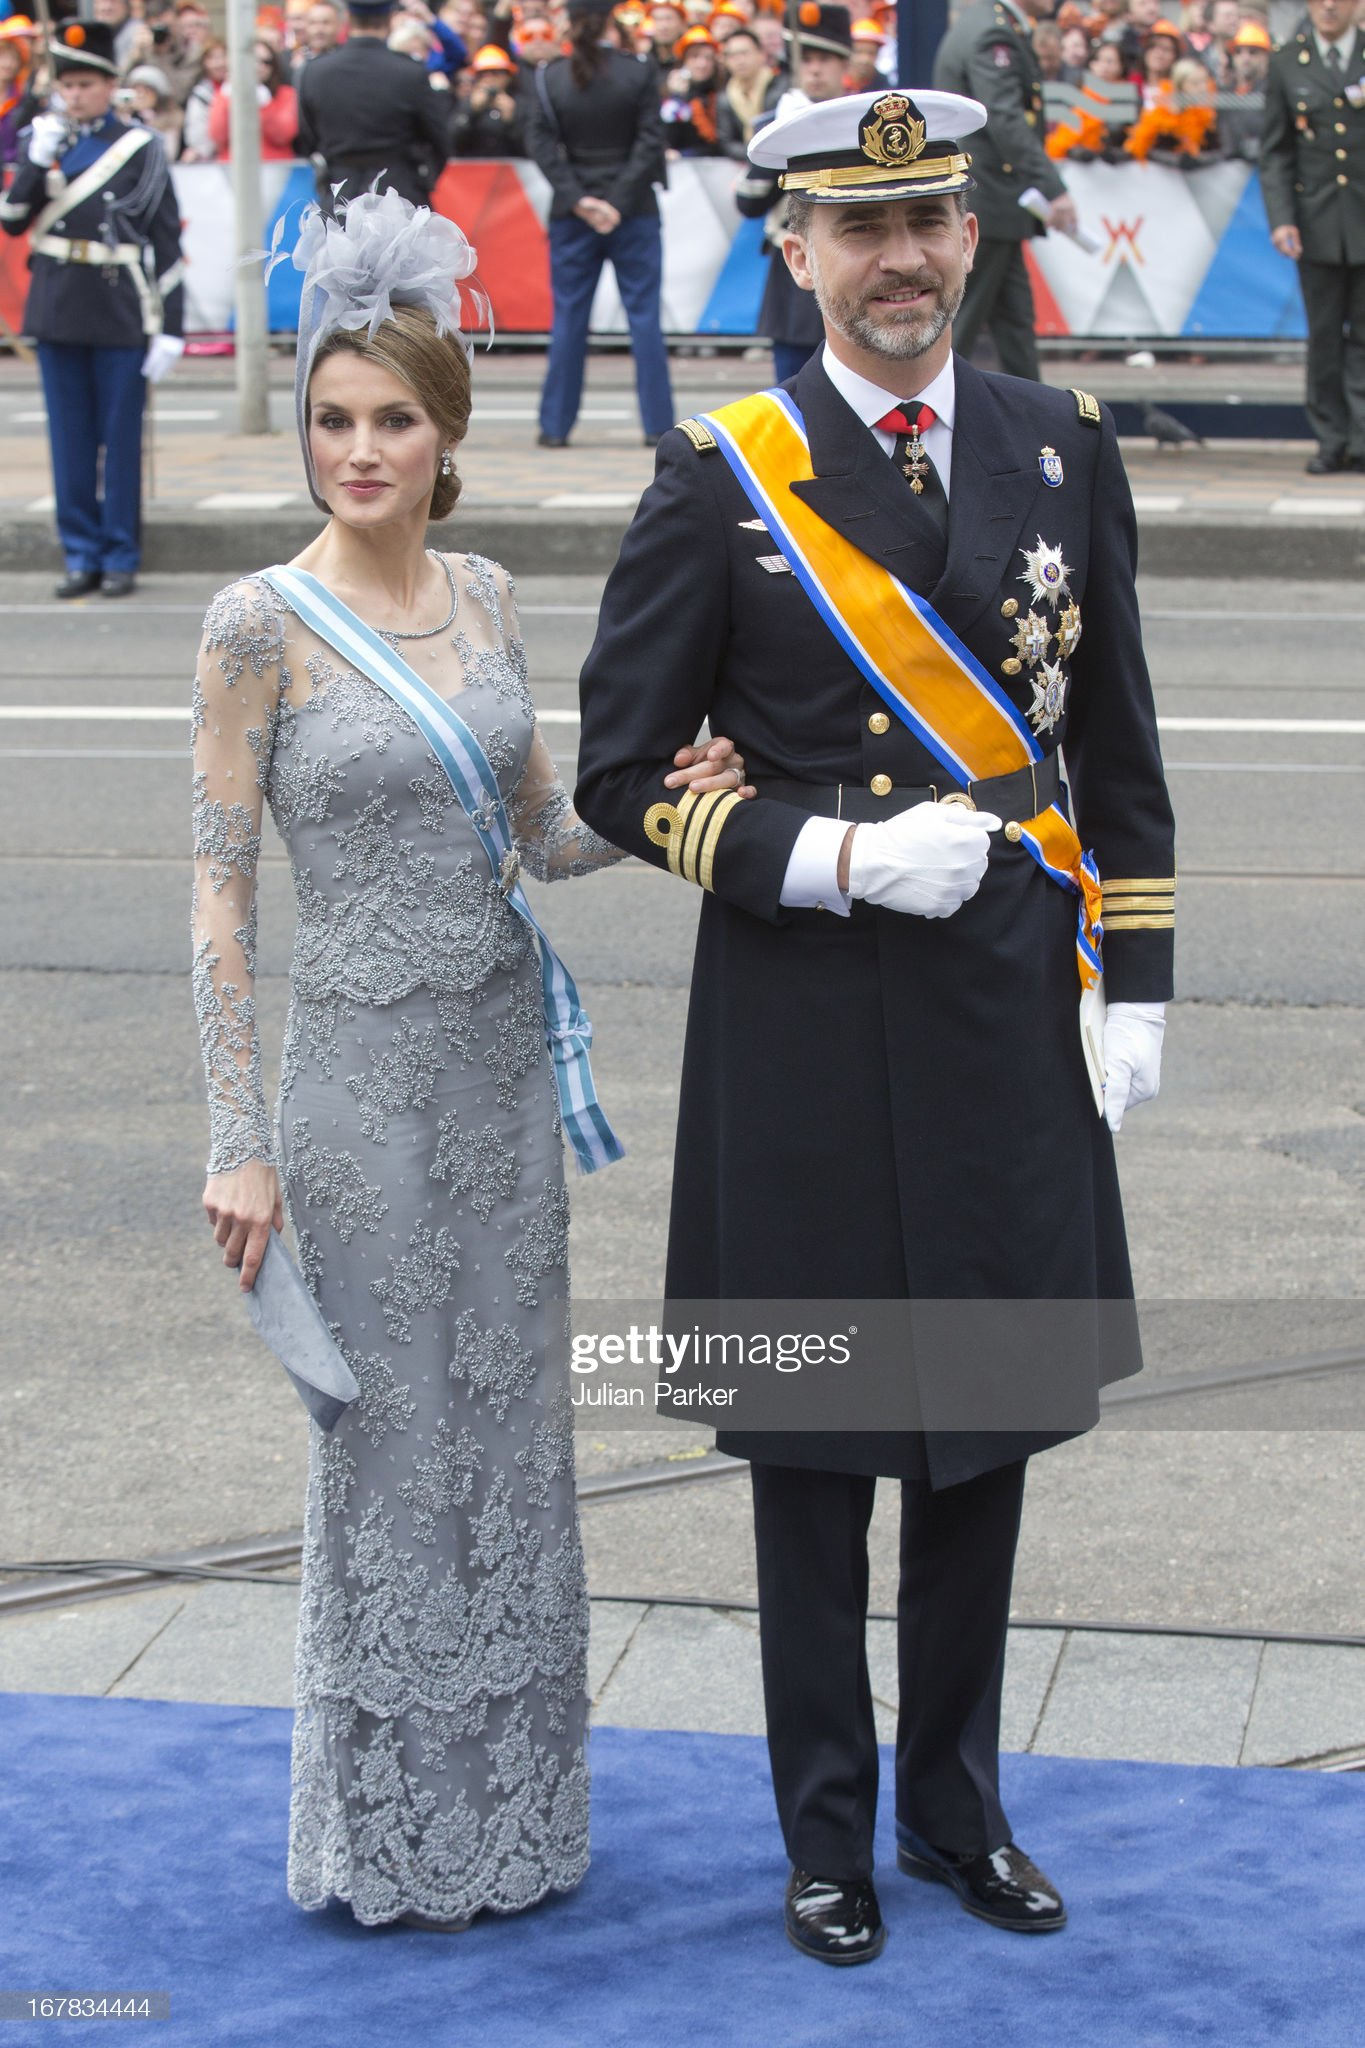 The Inauguration Of King Willem Alexander As Queen Beatrix Of The Netherlands Abdicates : News Photo